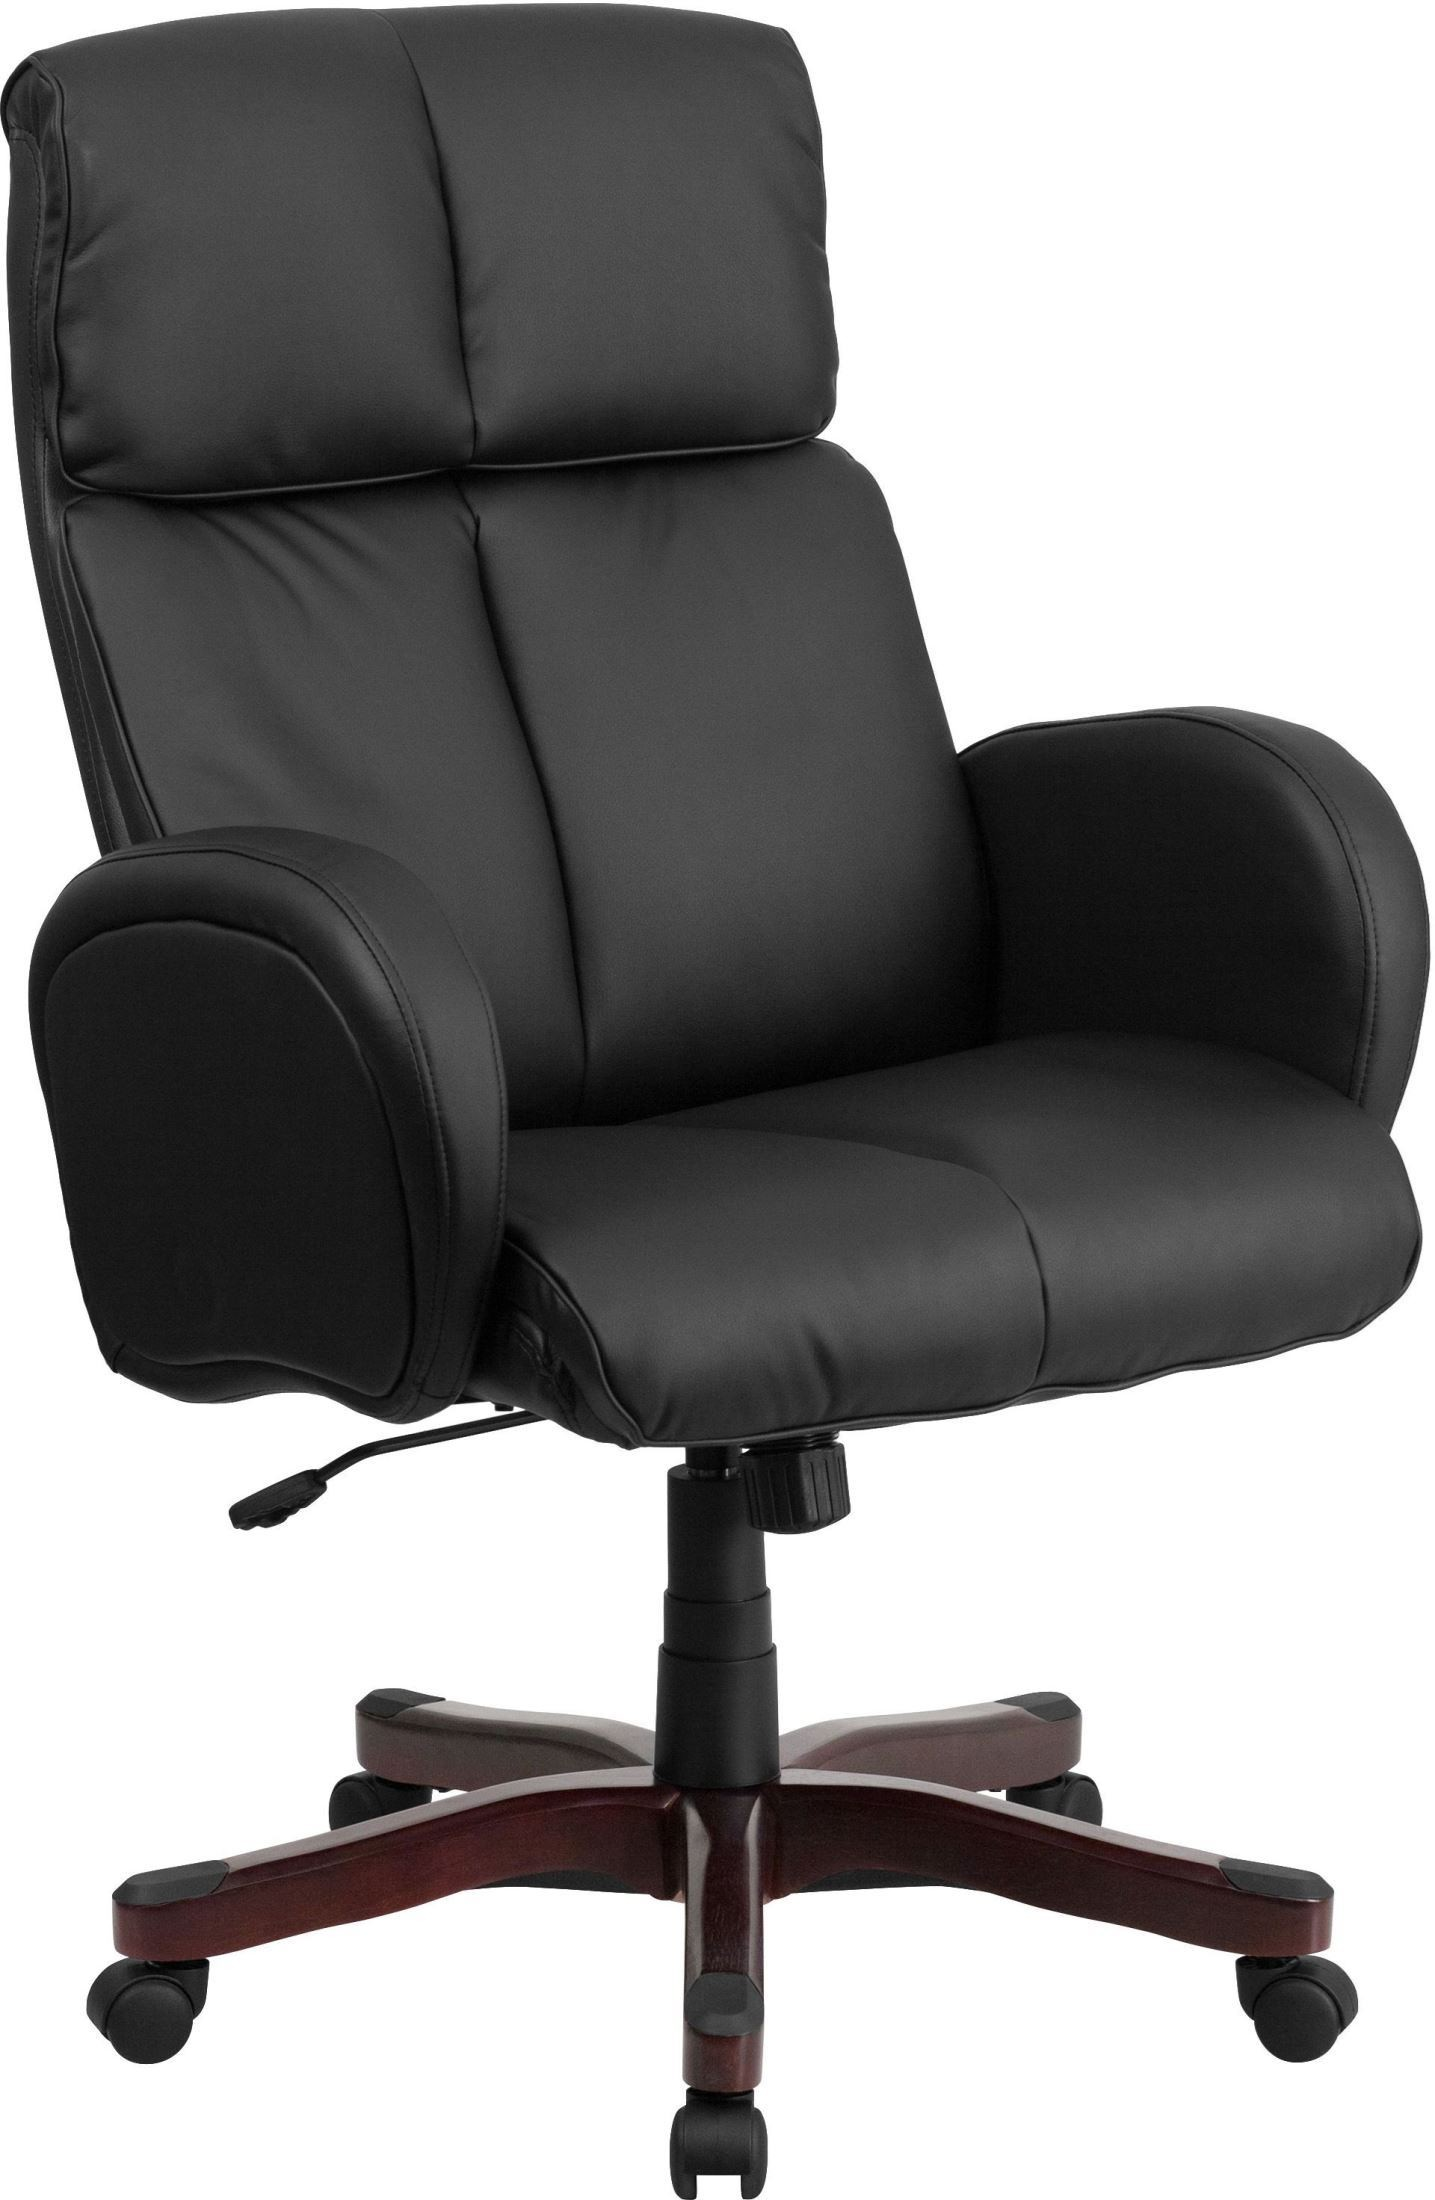 Tall black executive swivel office arm chair bt 9028h 1 for Swivel chairs for office